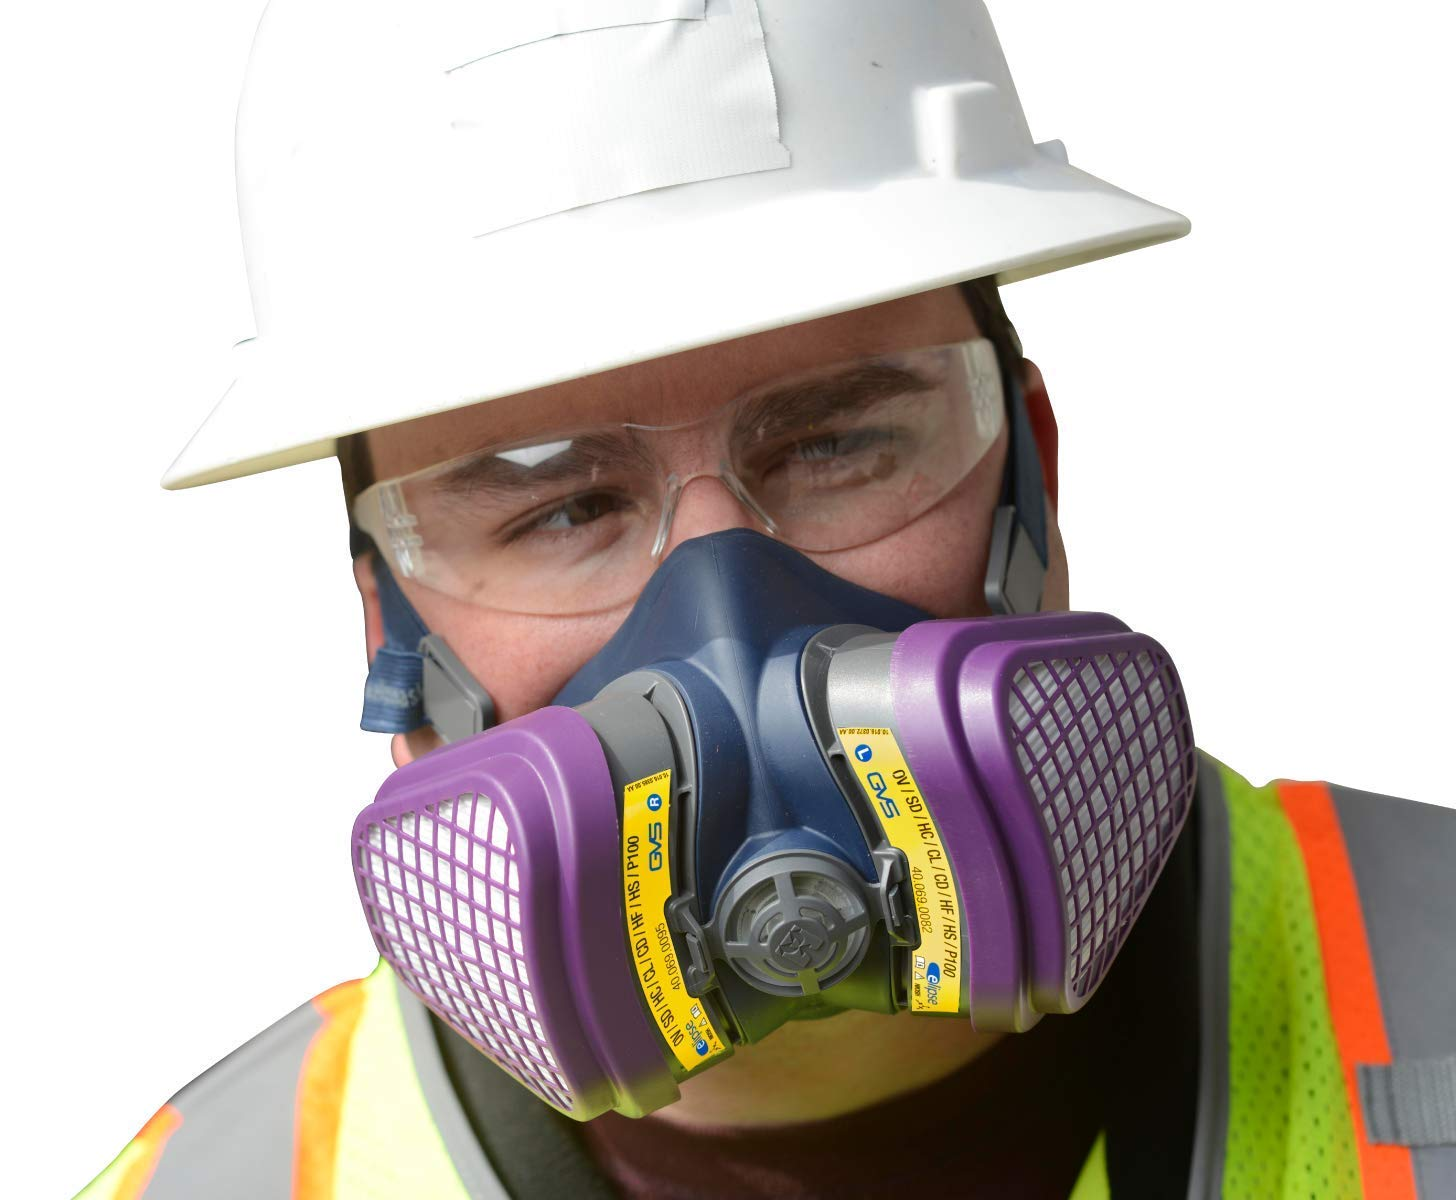 GVS SPR473 Elipse OV/AG-P100 Dust and Organic/Acid Gas Vapour Half Mask Respirator with Replaceable and Reusable Filters Included by GVS Elipse (Image #3)